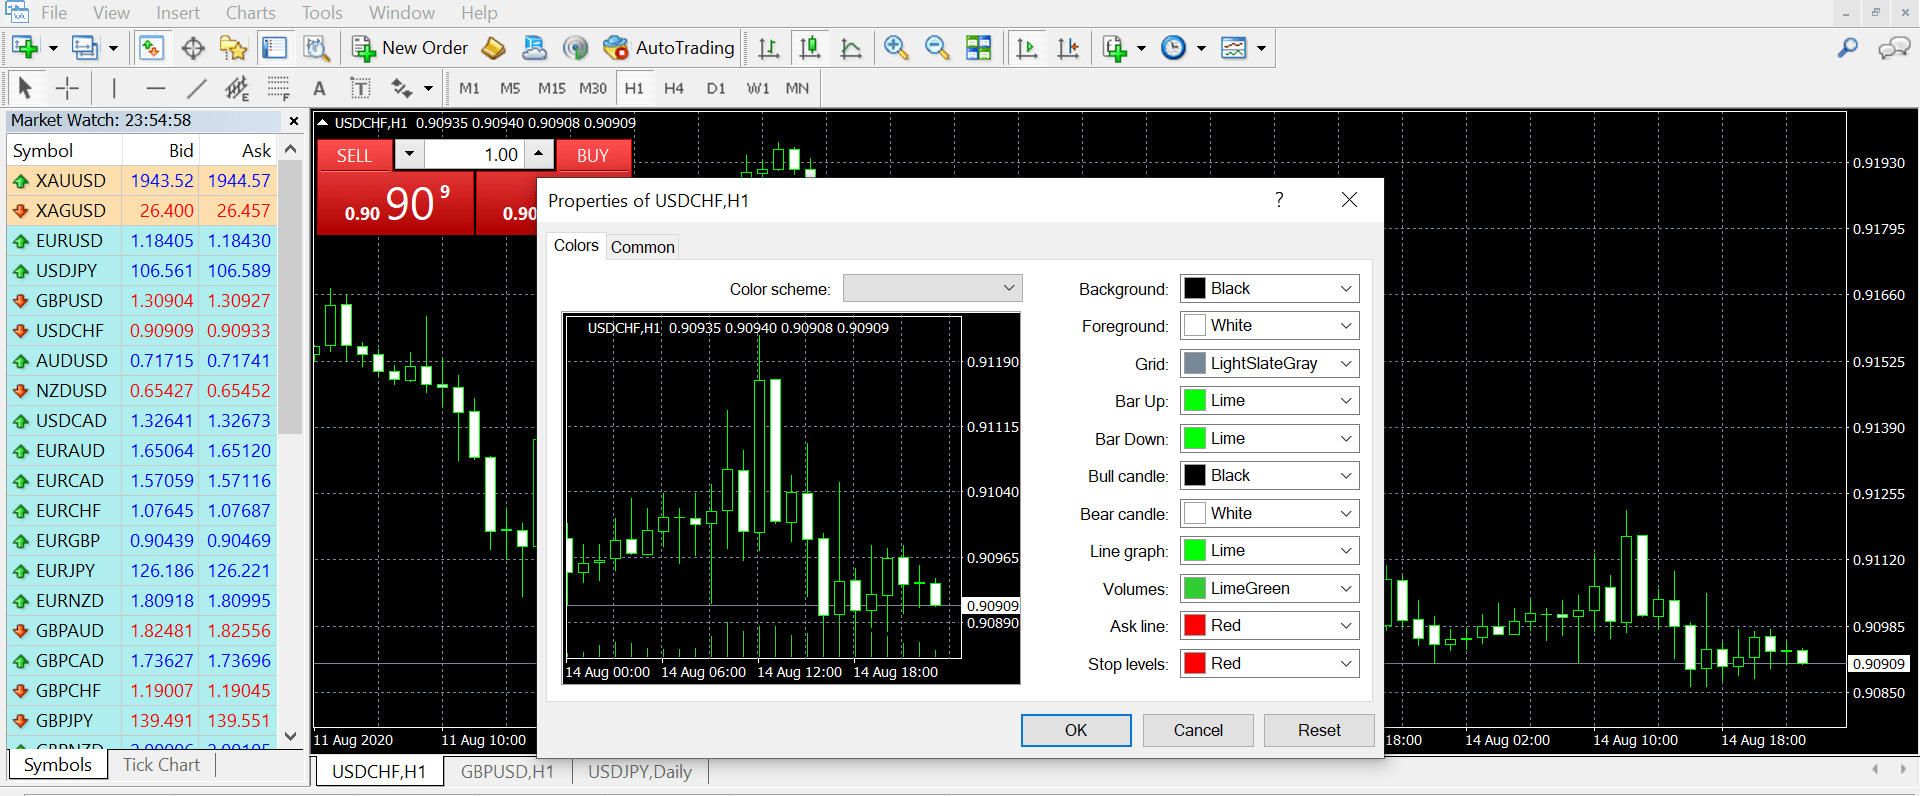 tradingplatforms-metatrader4-whatismt4-and-howtouseit-properties-image